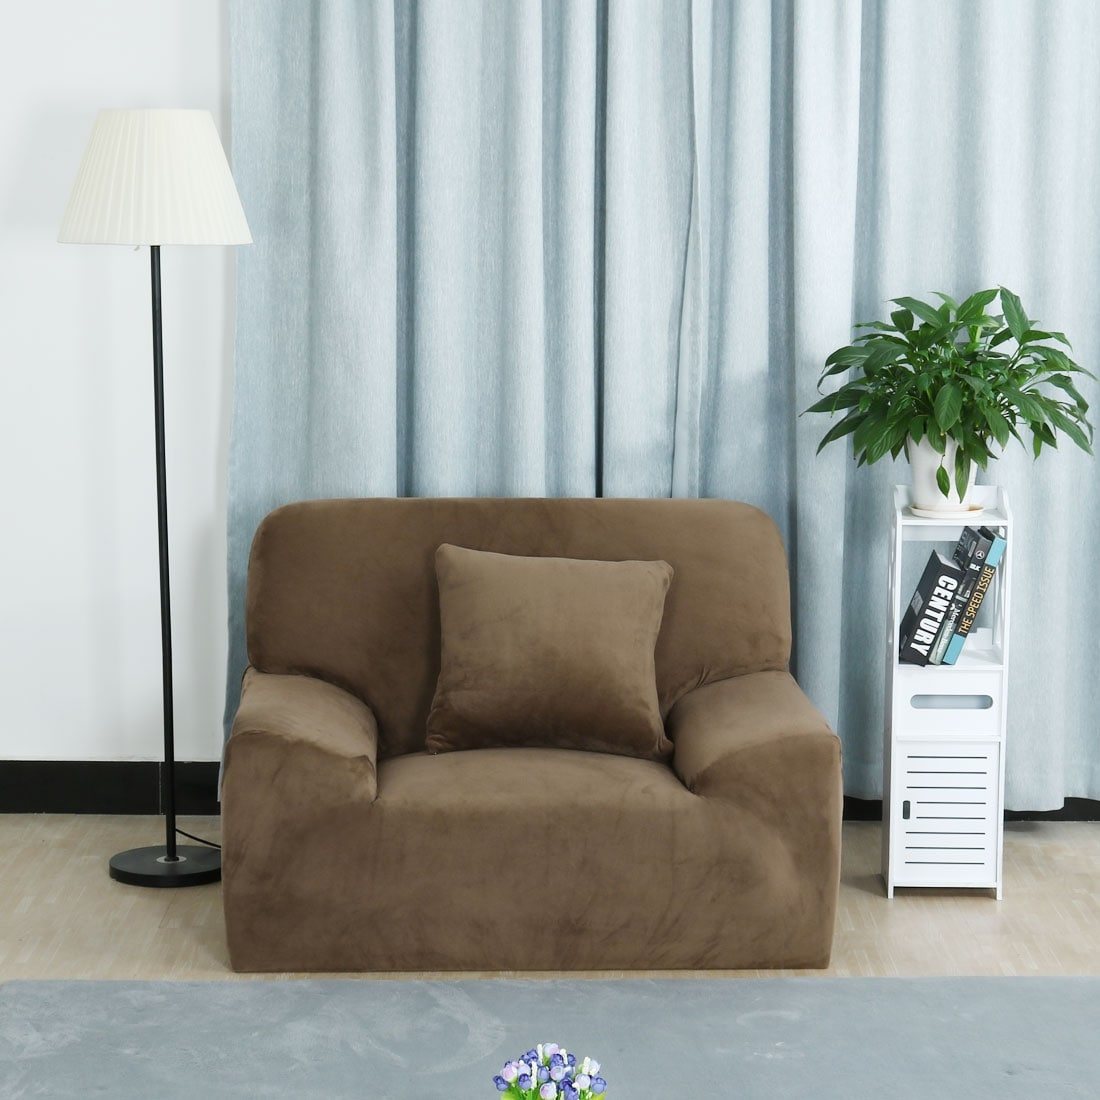 Stretch Chair Loveseat Couch Sofa Cover